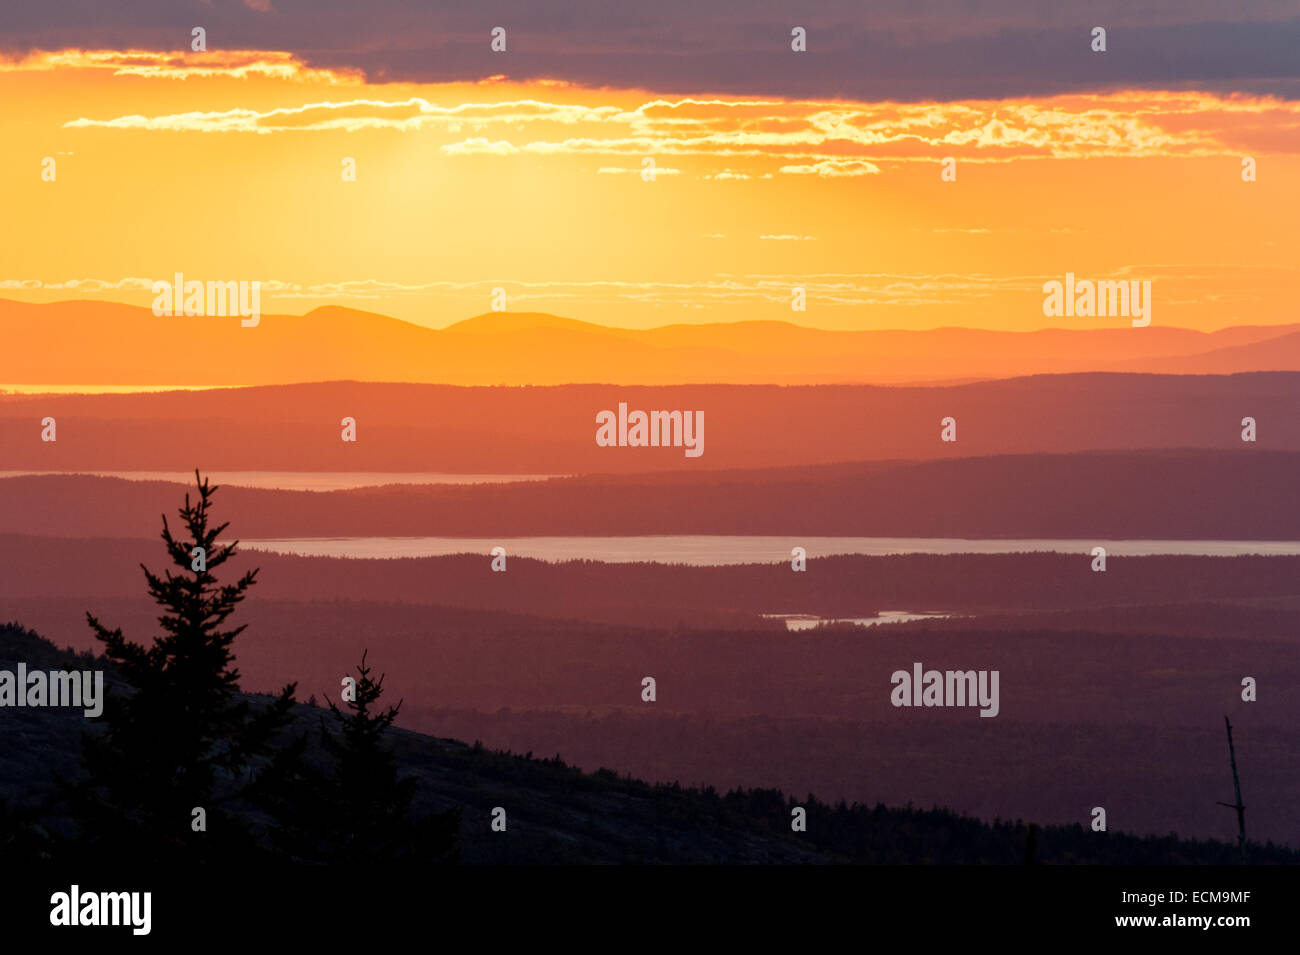 The view to the west at sunset from the summit of Cadillac Mountain in Acadia National Park, Maine. Stock Photo